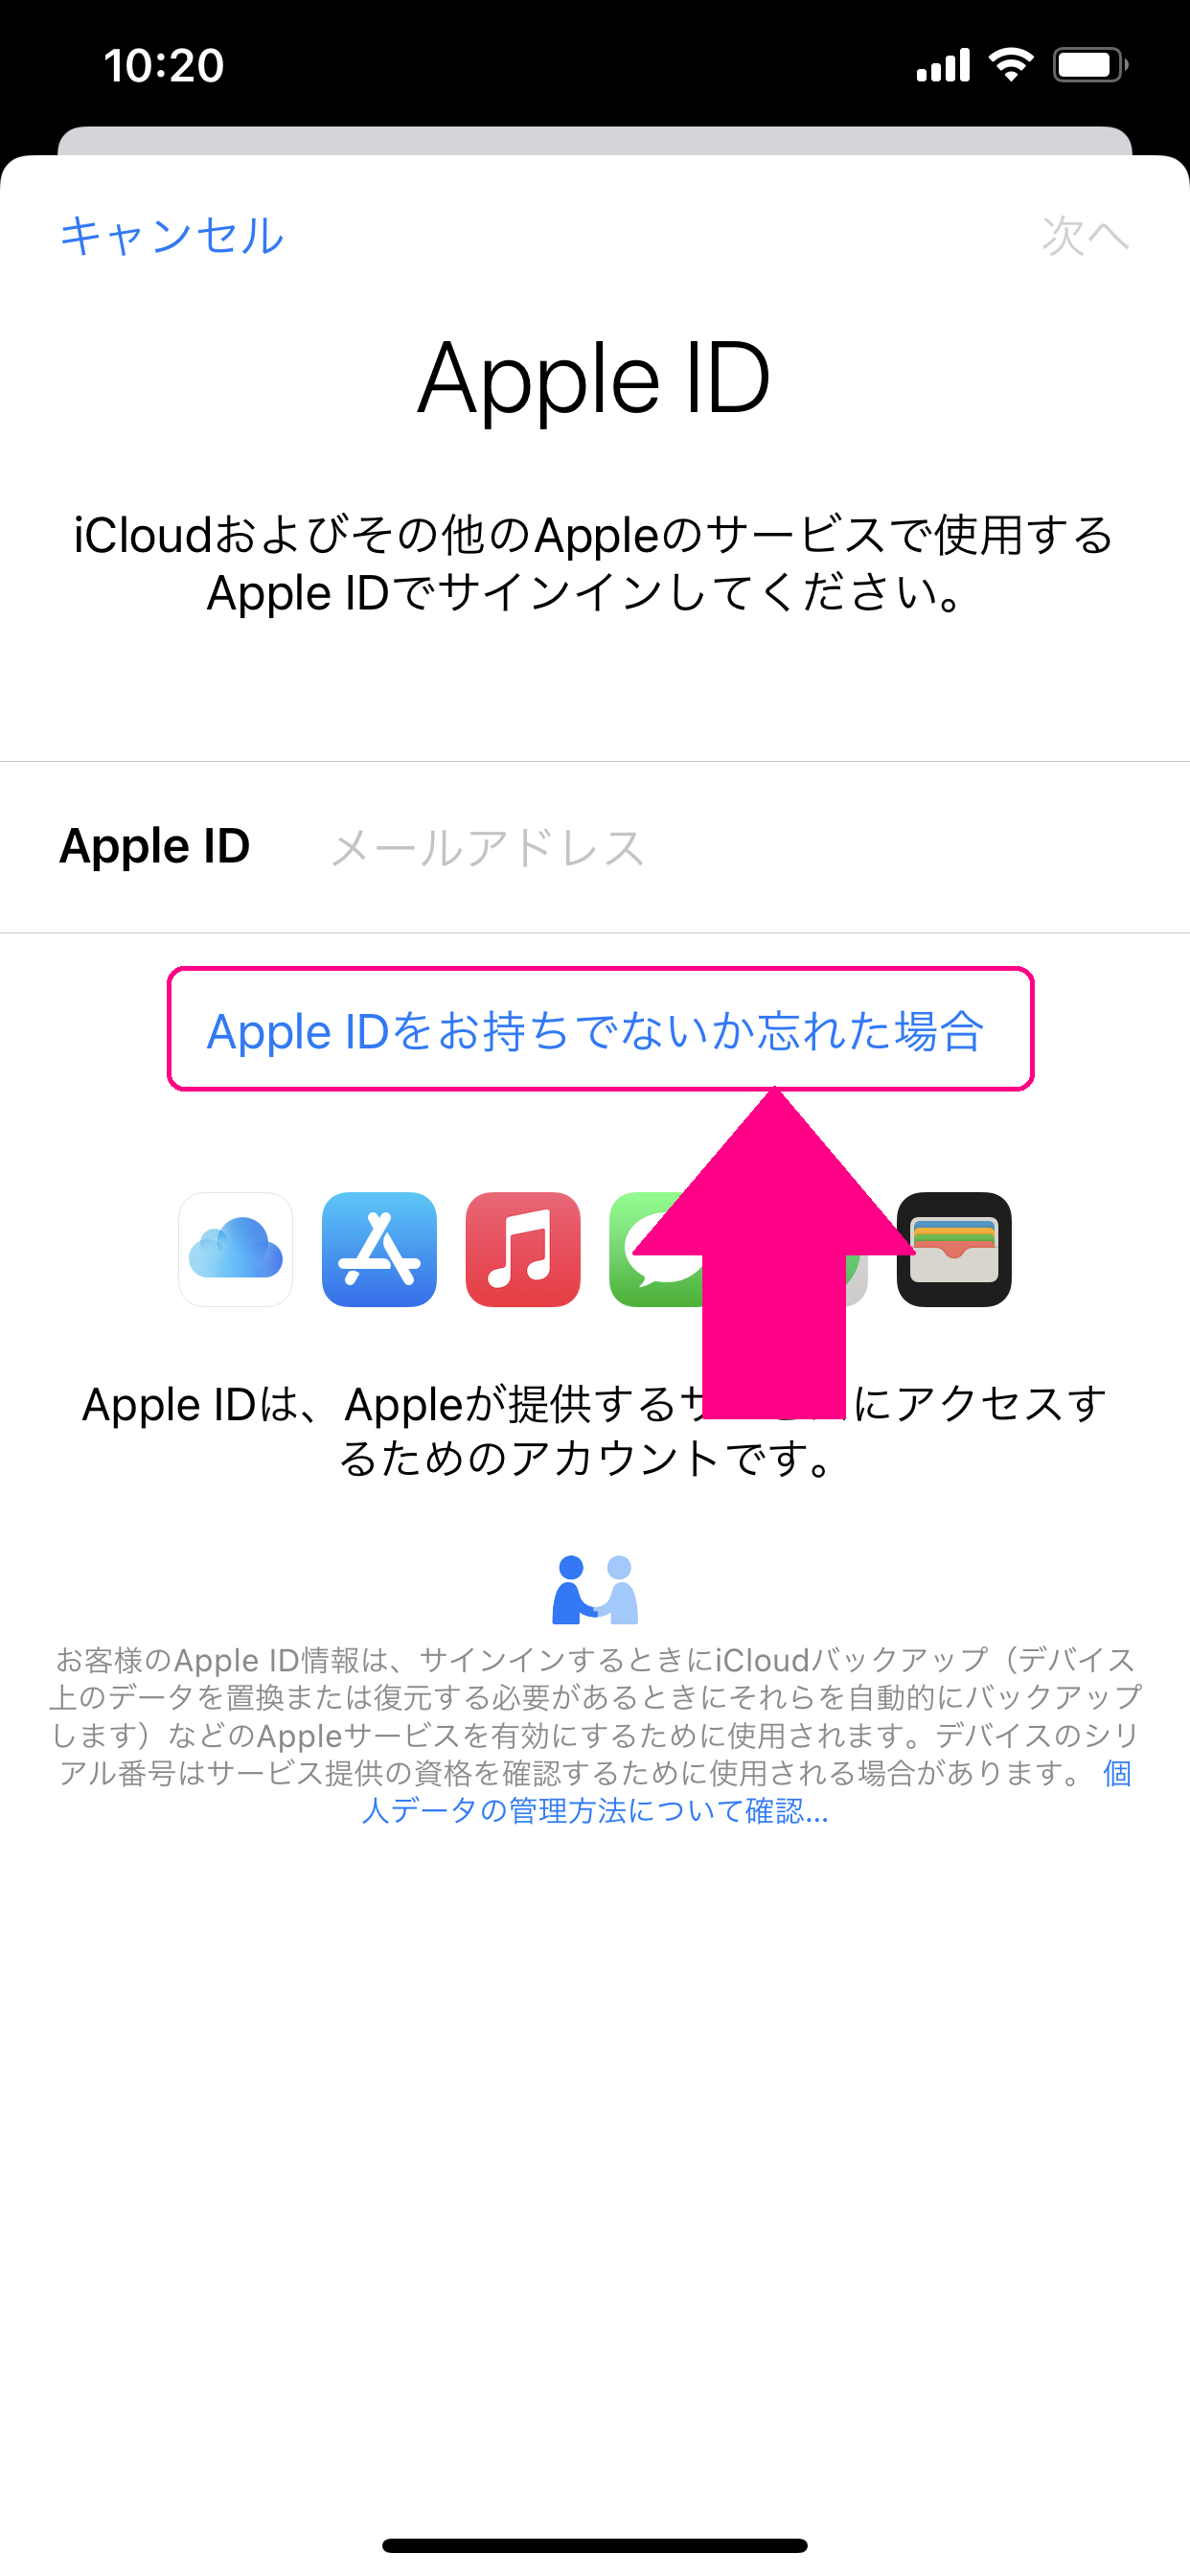 Apple ID作成